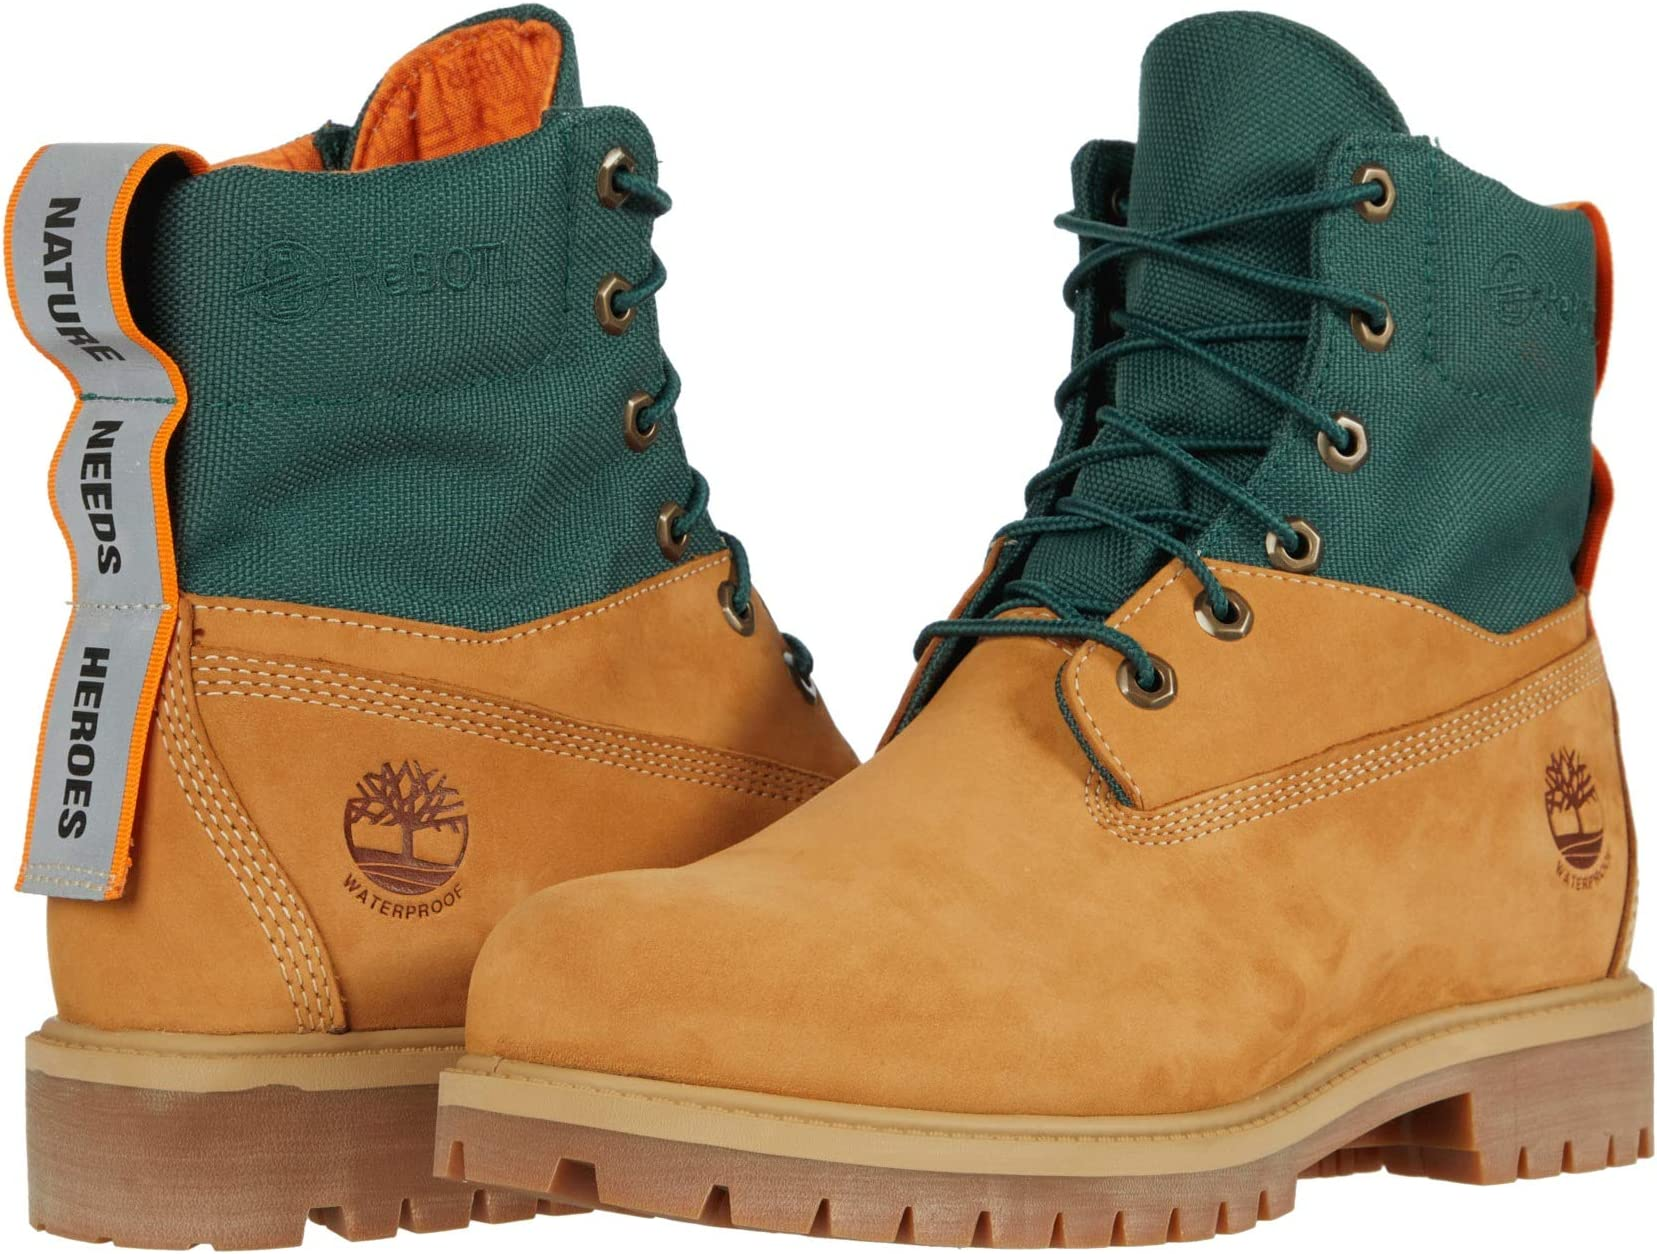 Shop Timberland Boot Styles